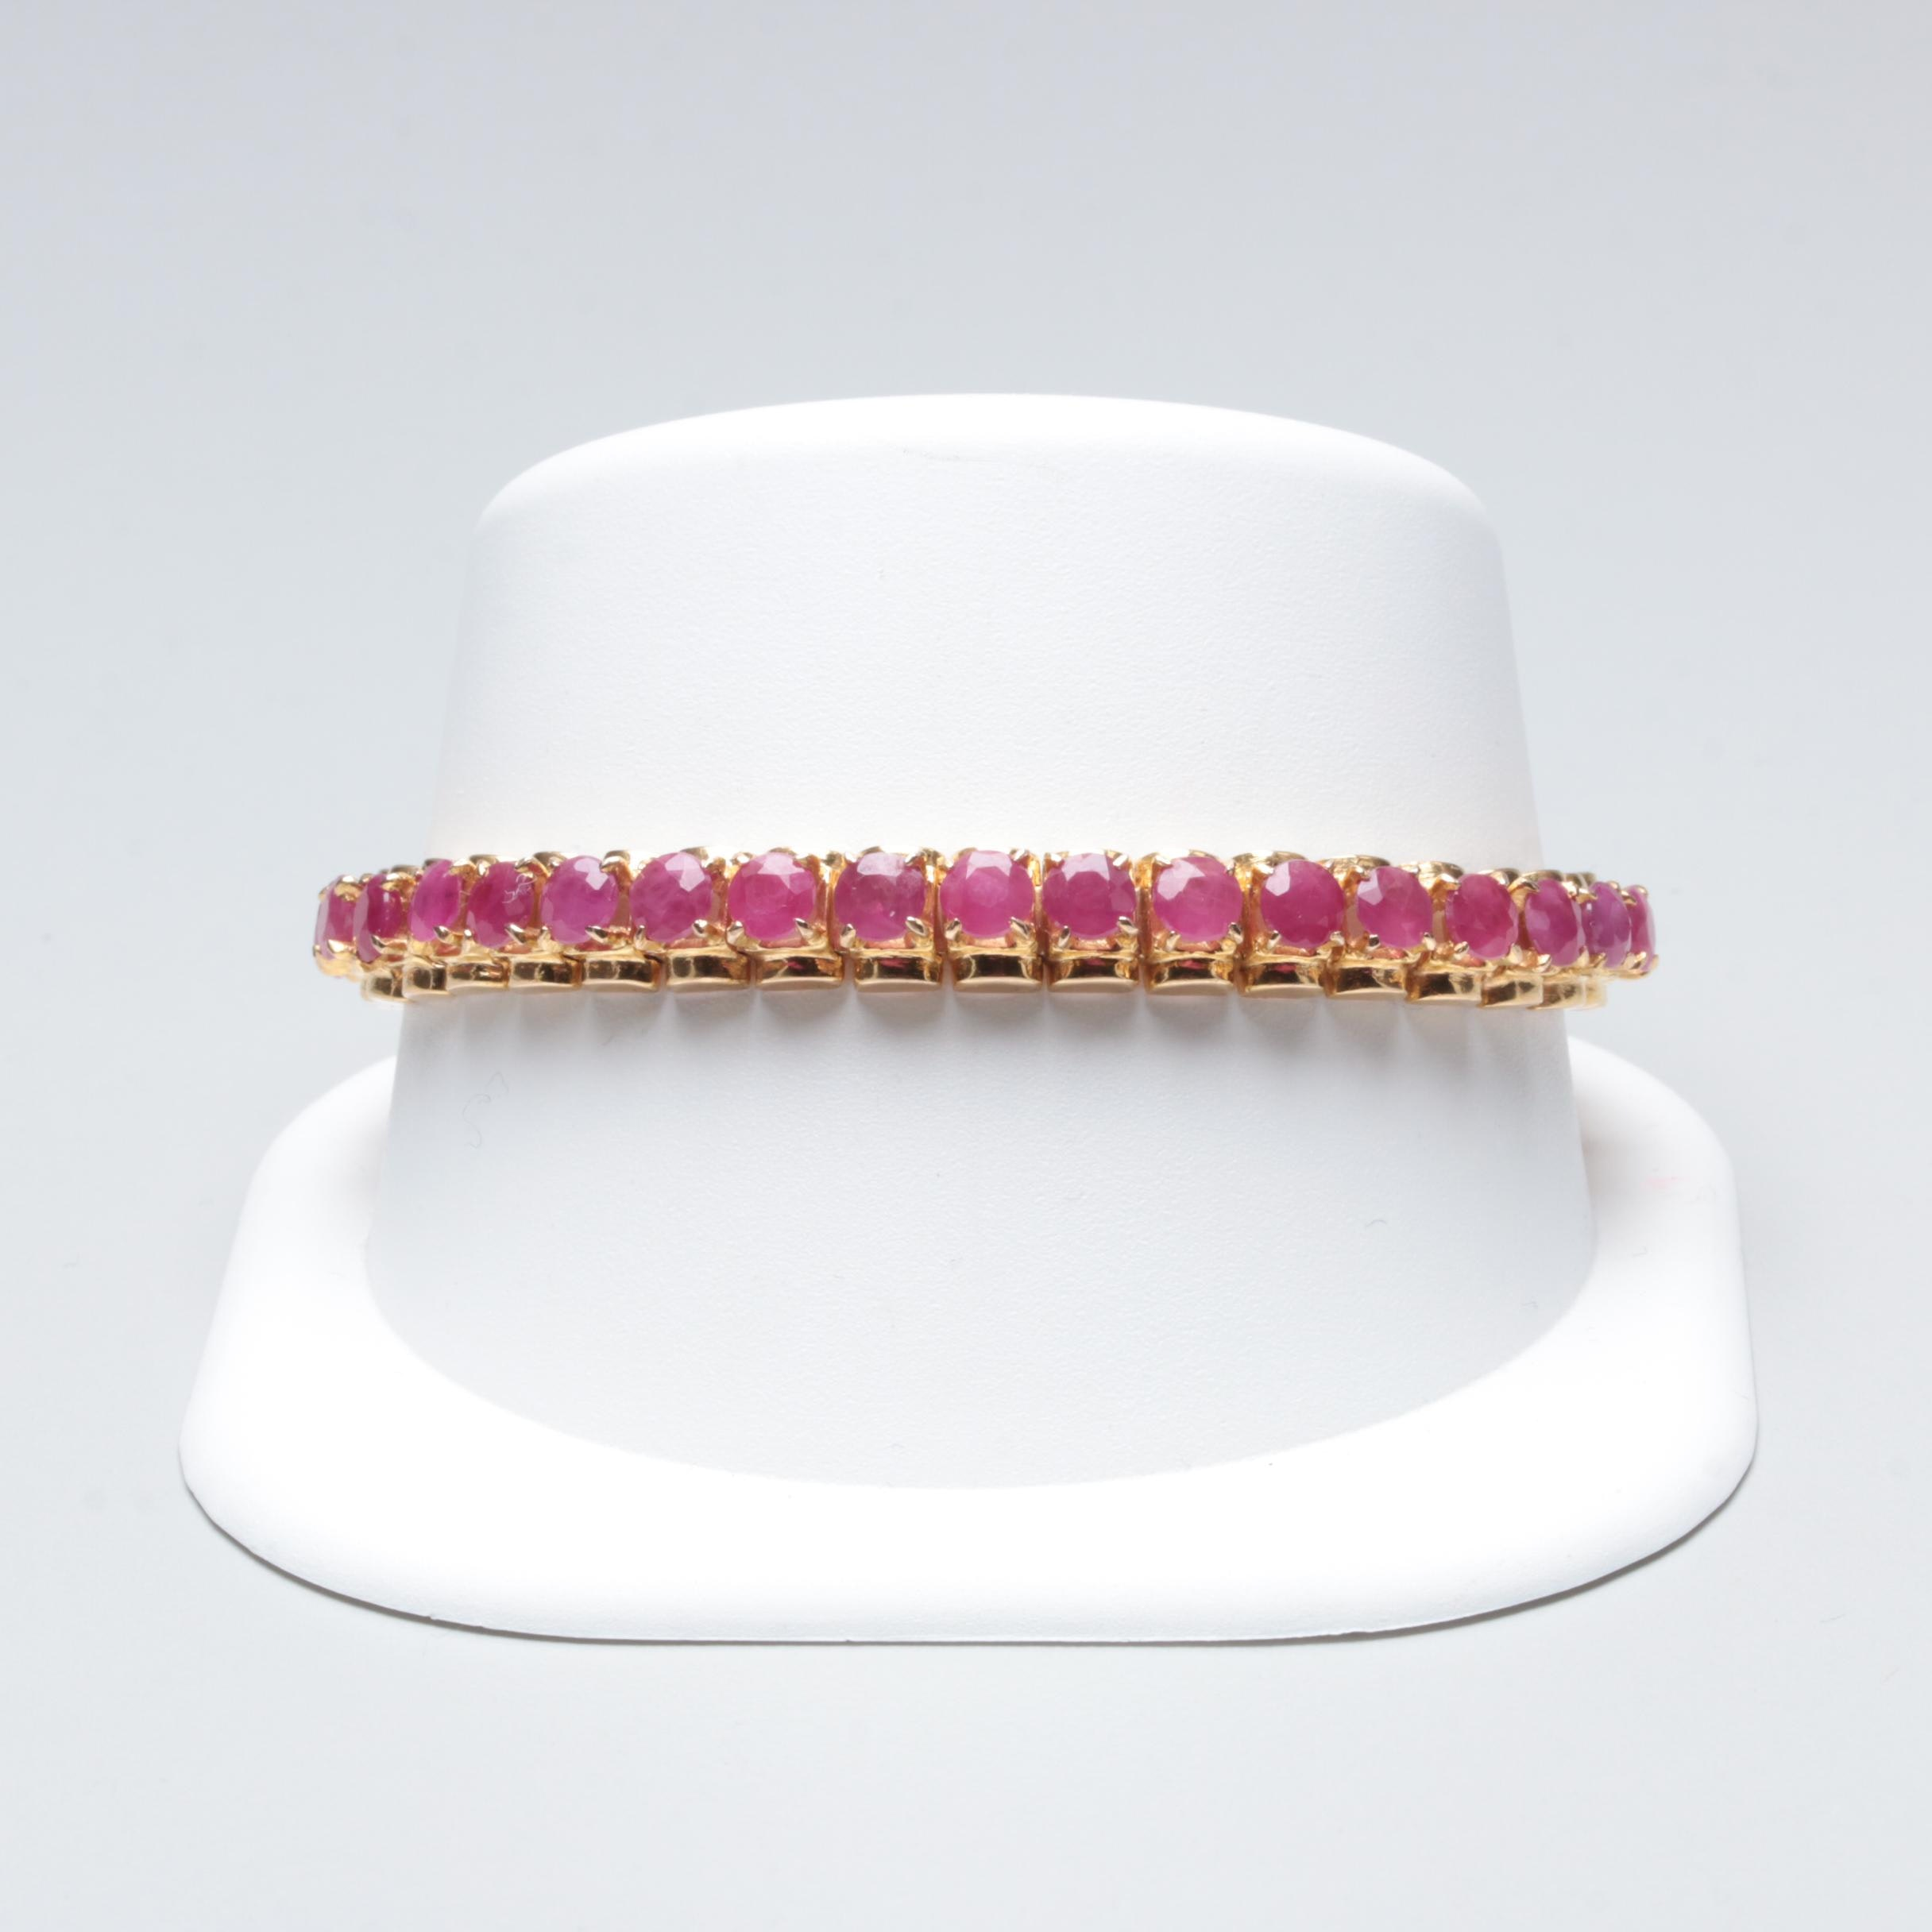 10K Yellow Gold Ruby Bracelet